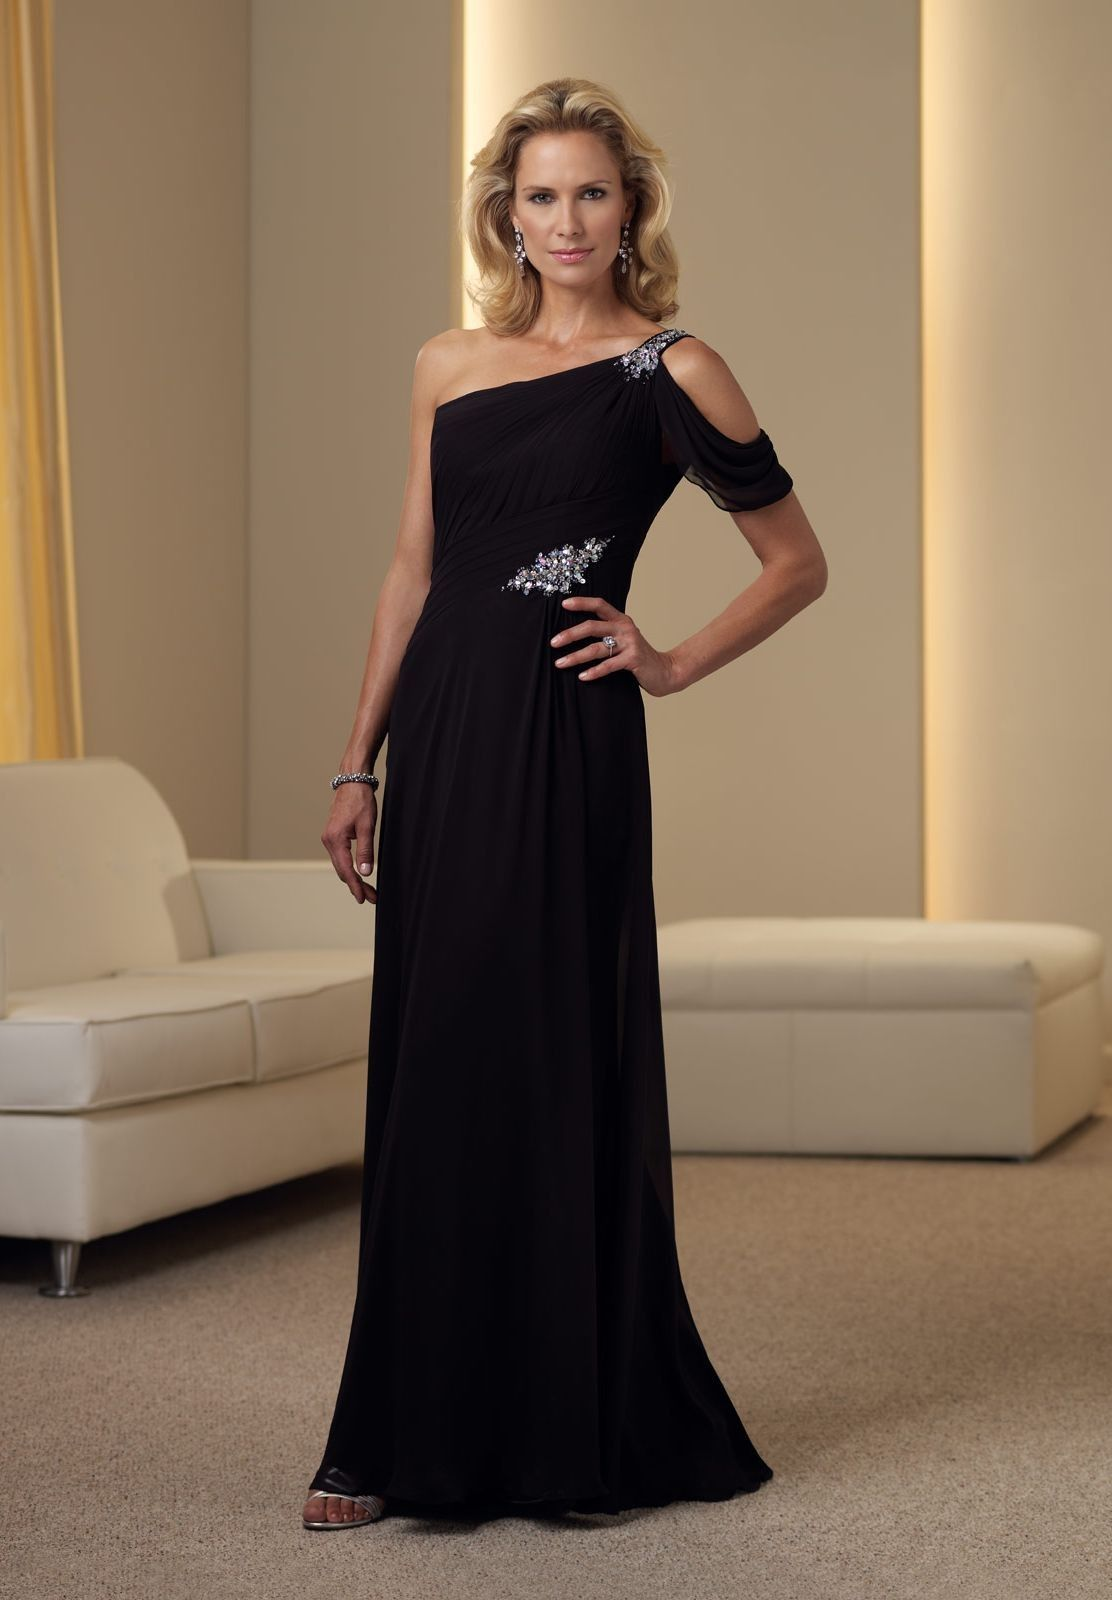 Wedding dresses for mother of the bride   Mother of the Bride Dresses  Chic and Youthful Styles  Chiffon